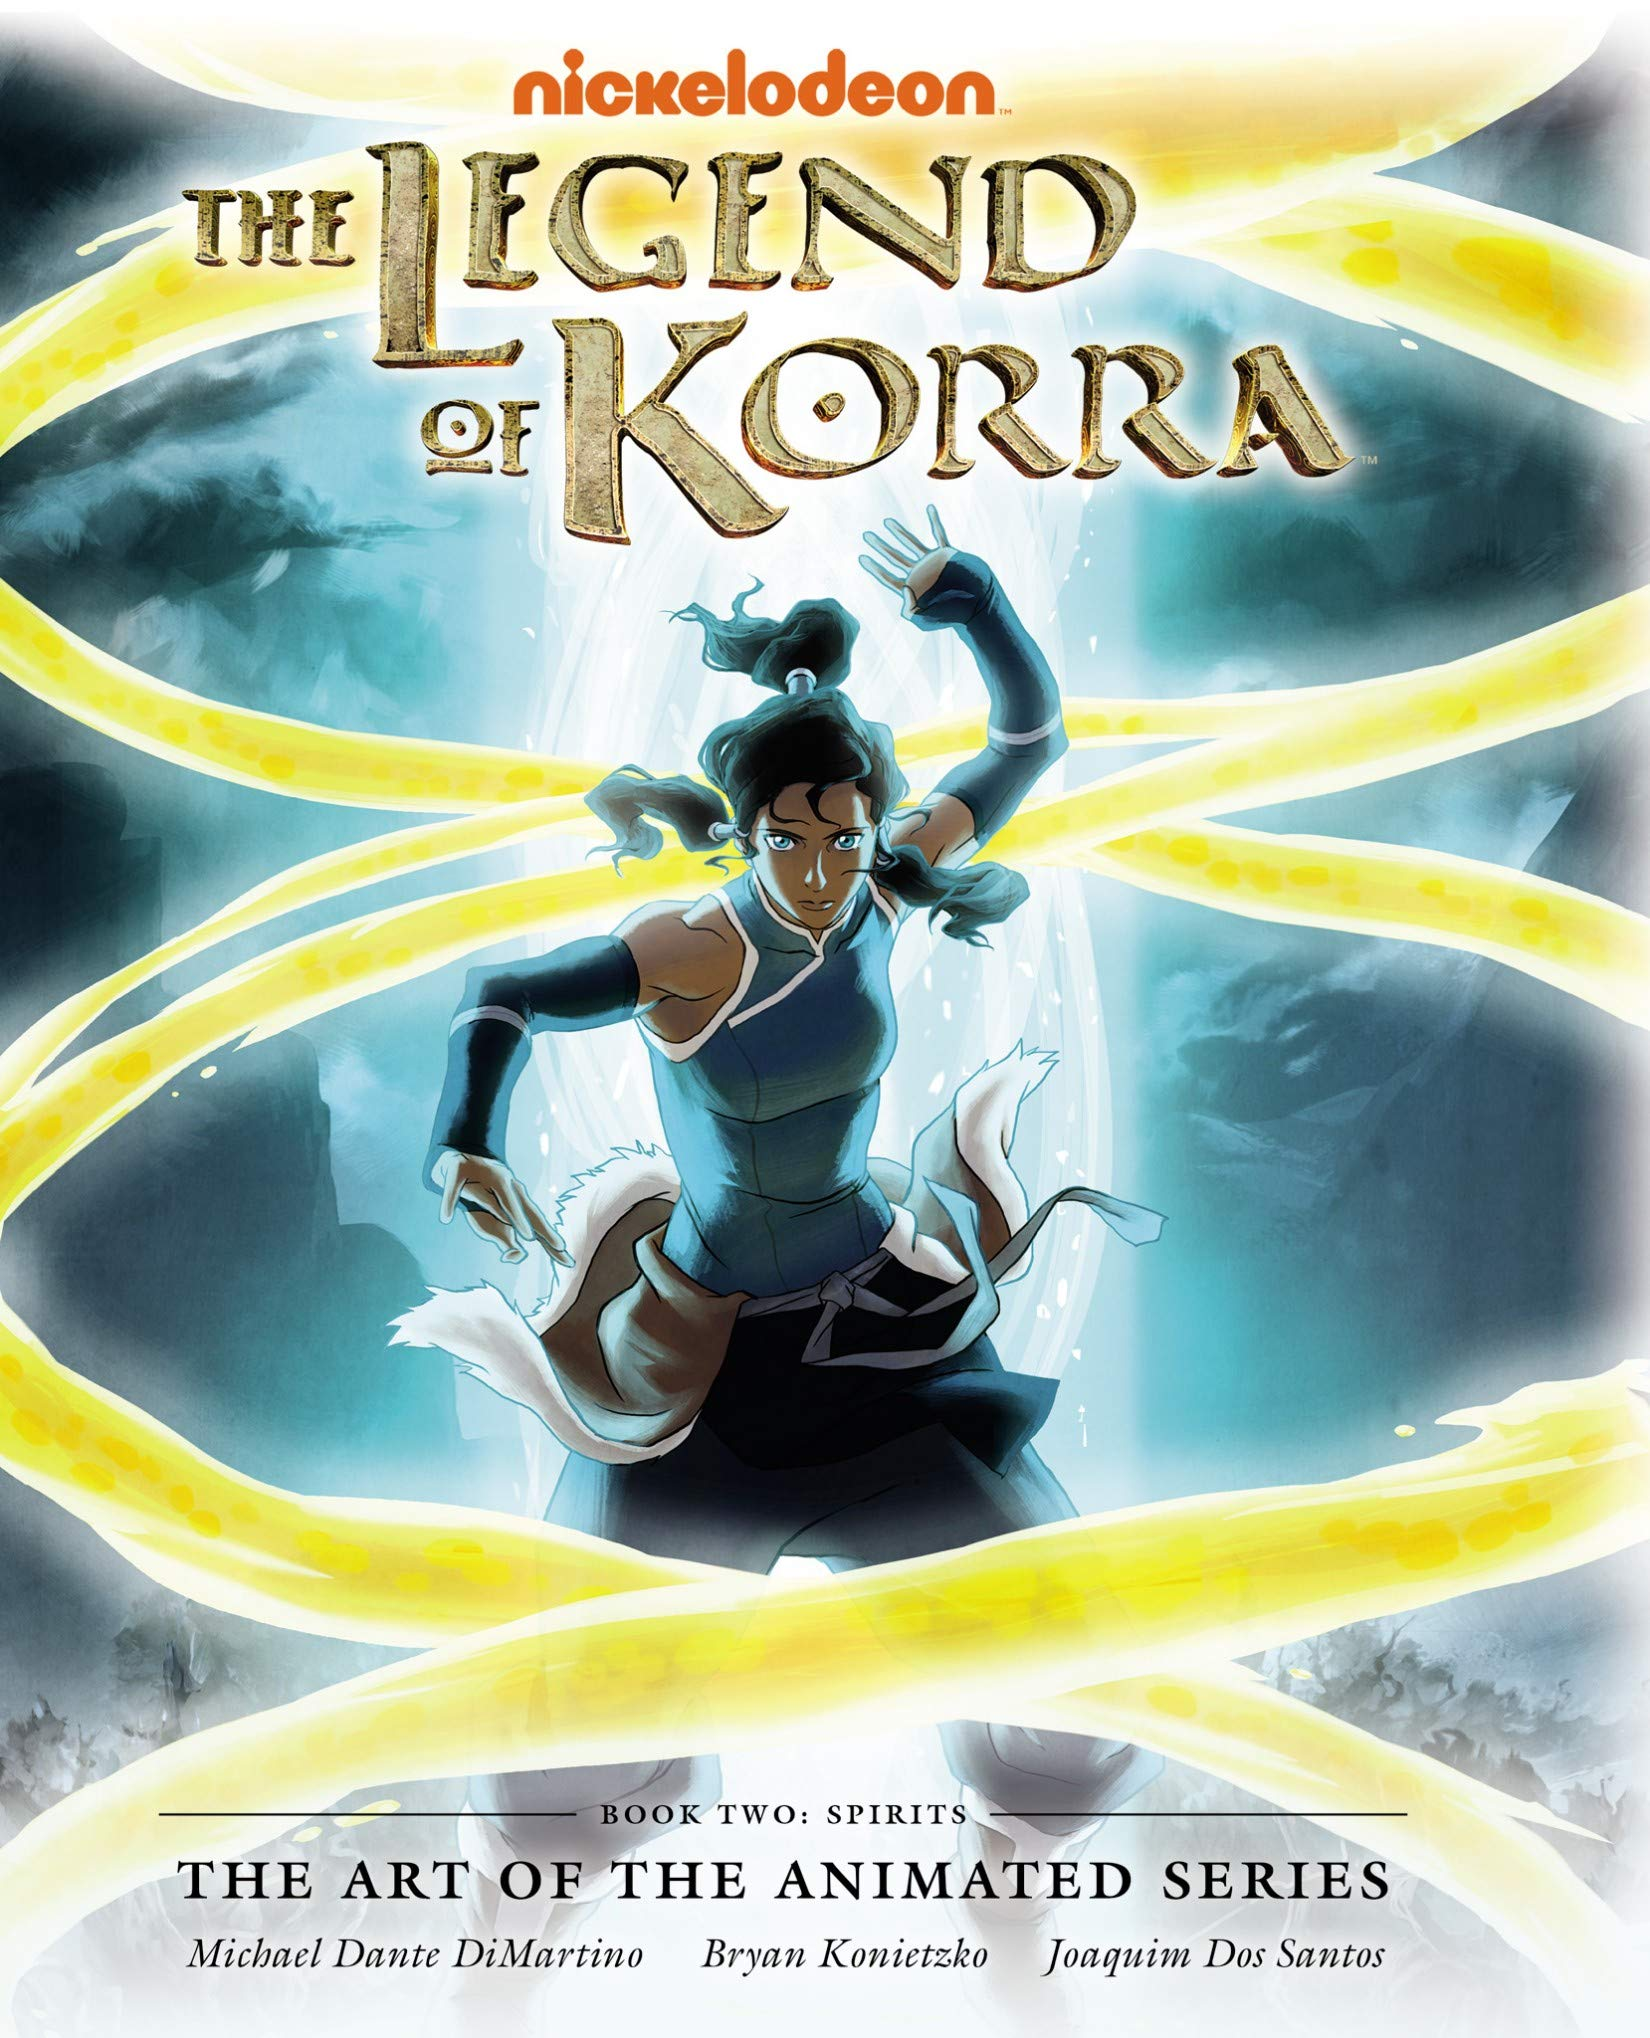 TheLegend: Korra - Vol 2 Great Adventure Comic Avatar The Legend Graphic Novels Of Korra For Young & Teens , Adults